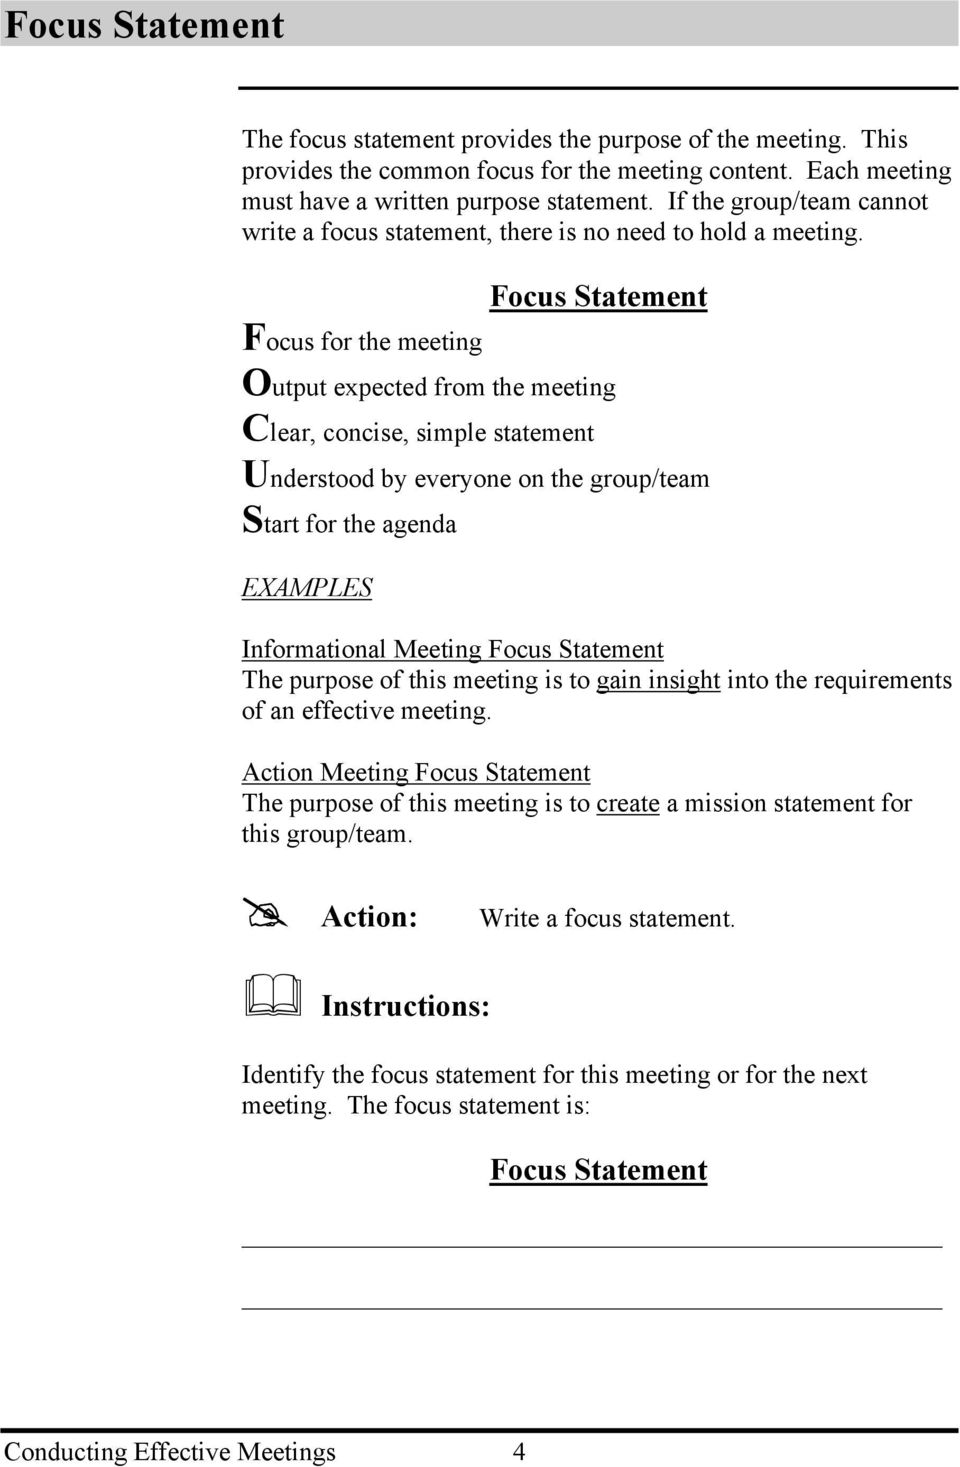 Focus Statement Focus for the meeting Output expected from the meeting Clear, concise, simple statement Understood by everyone on the group/team Start for the agenda EXAMPLES Informational Meeting